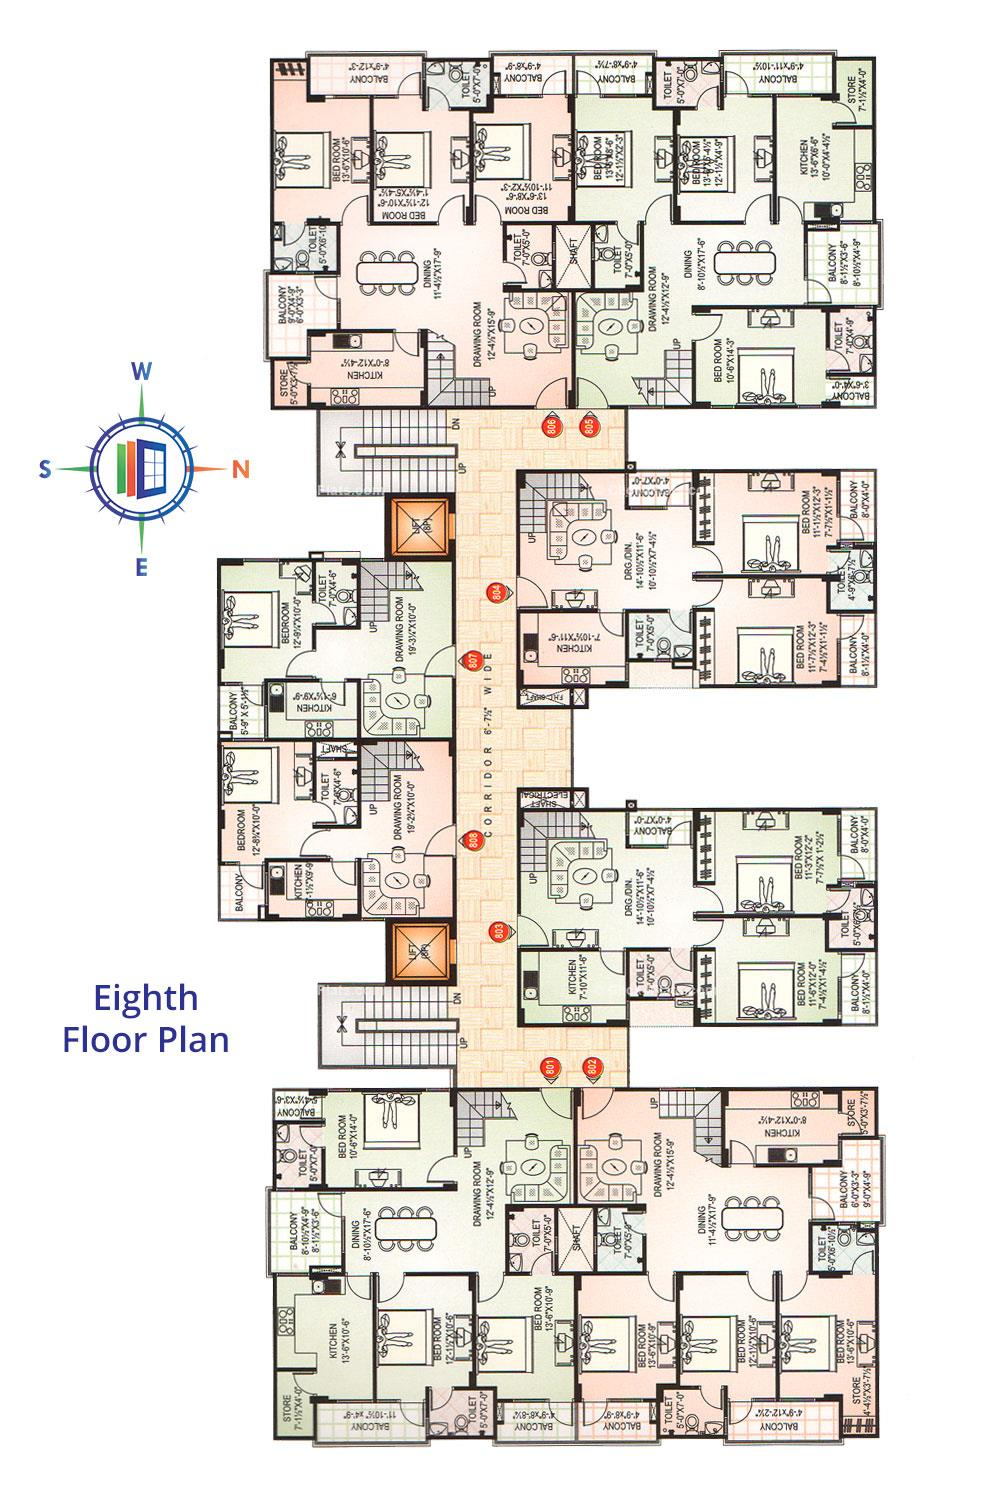 Okay Plus Green Heights Eighth Floor Plan